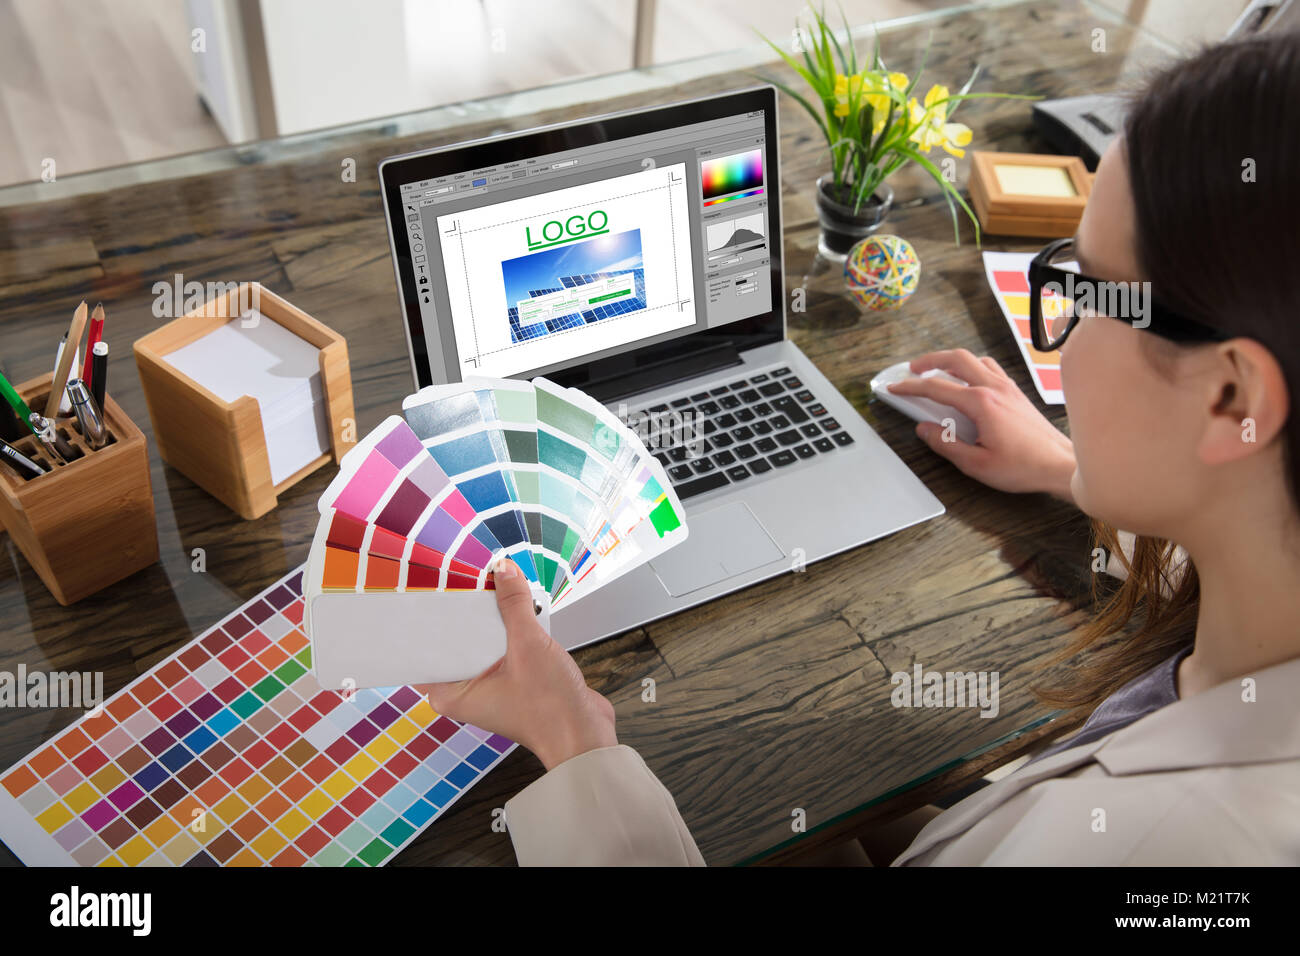 A Woman Holding Color Swatches Using A Laptop With Logo Design Software On The Screen Stock Photo